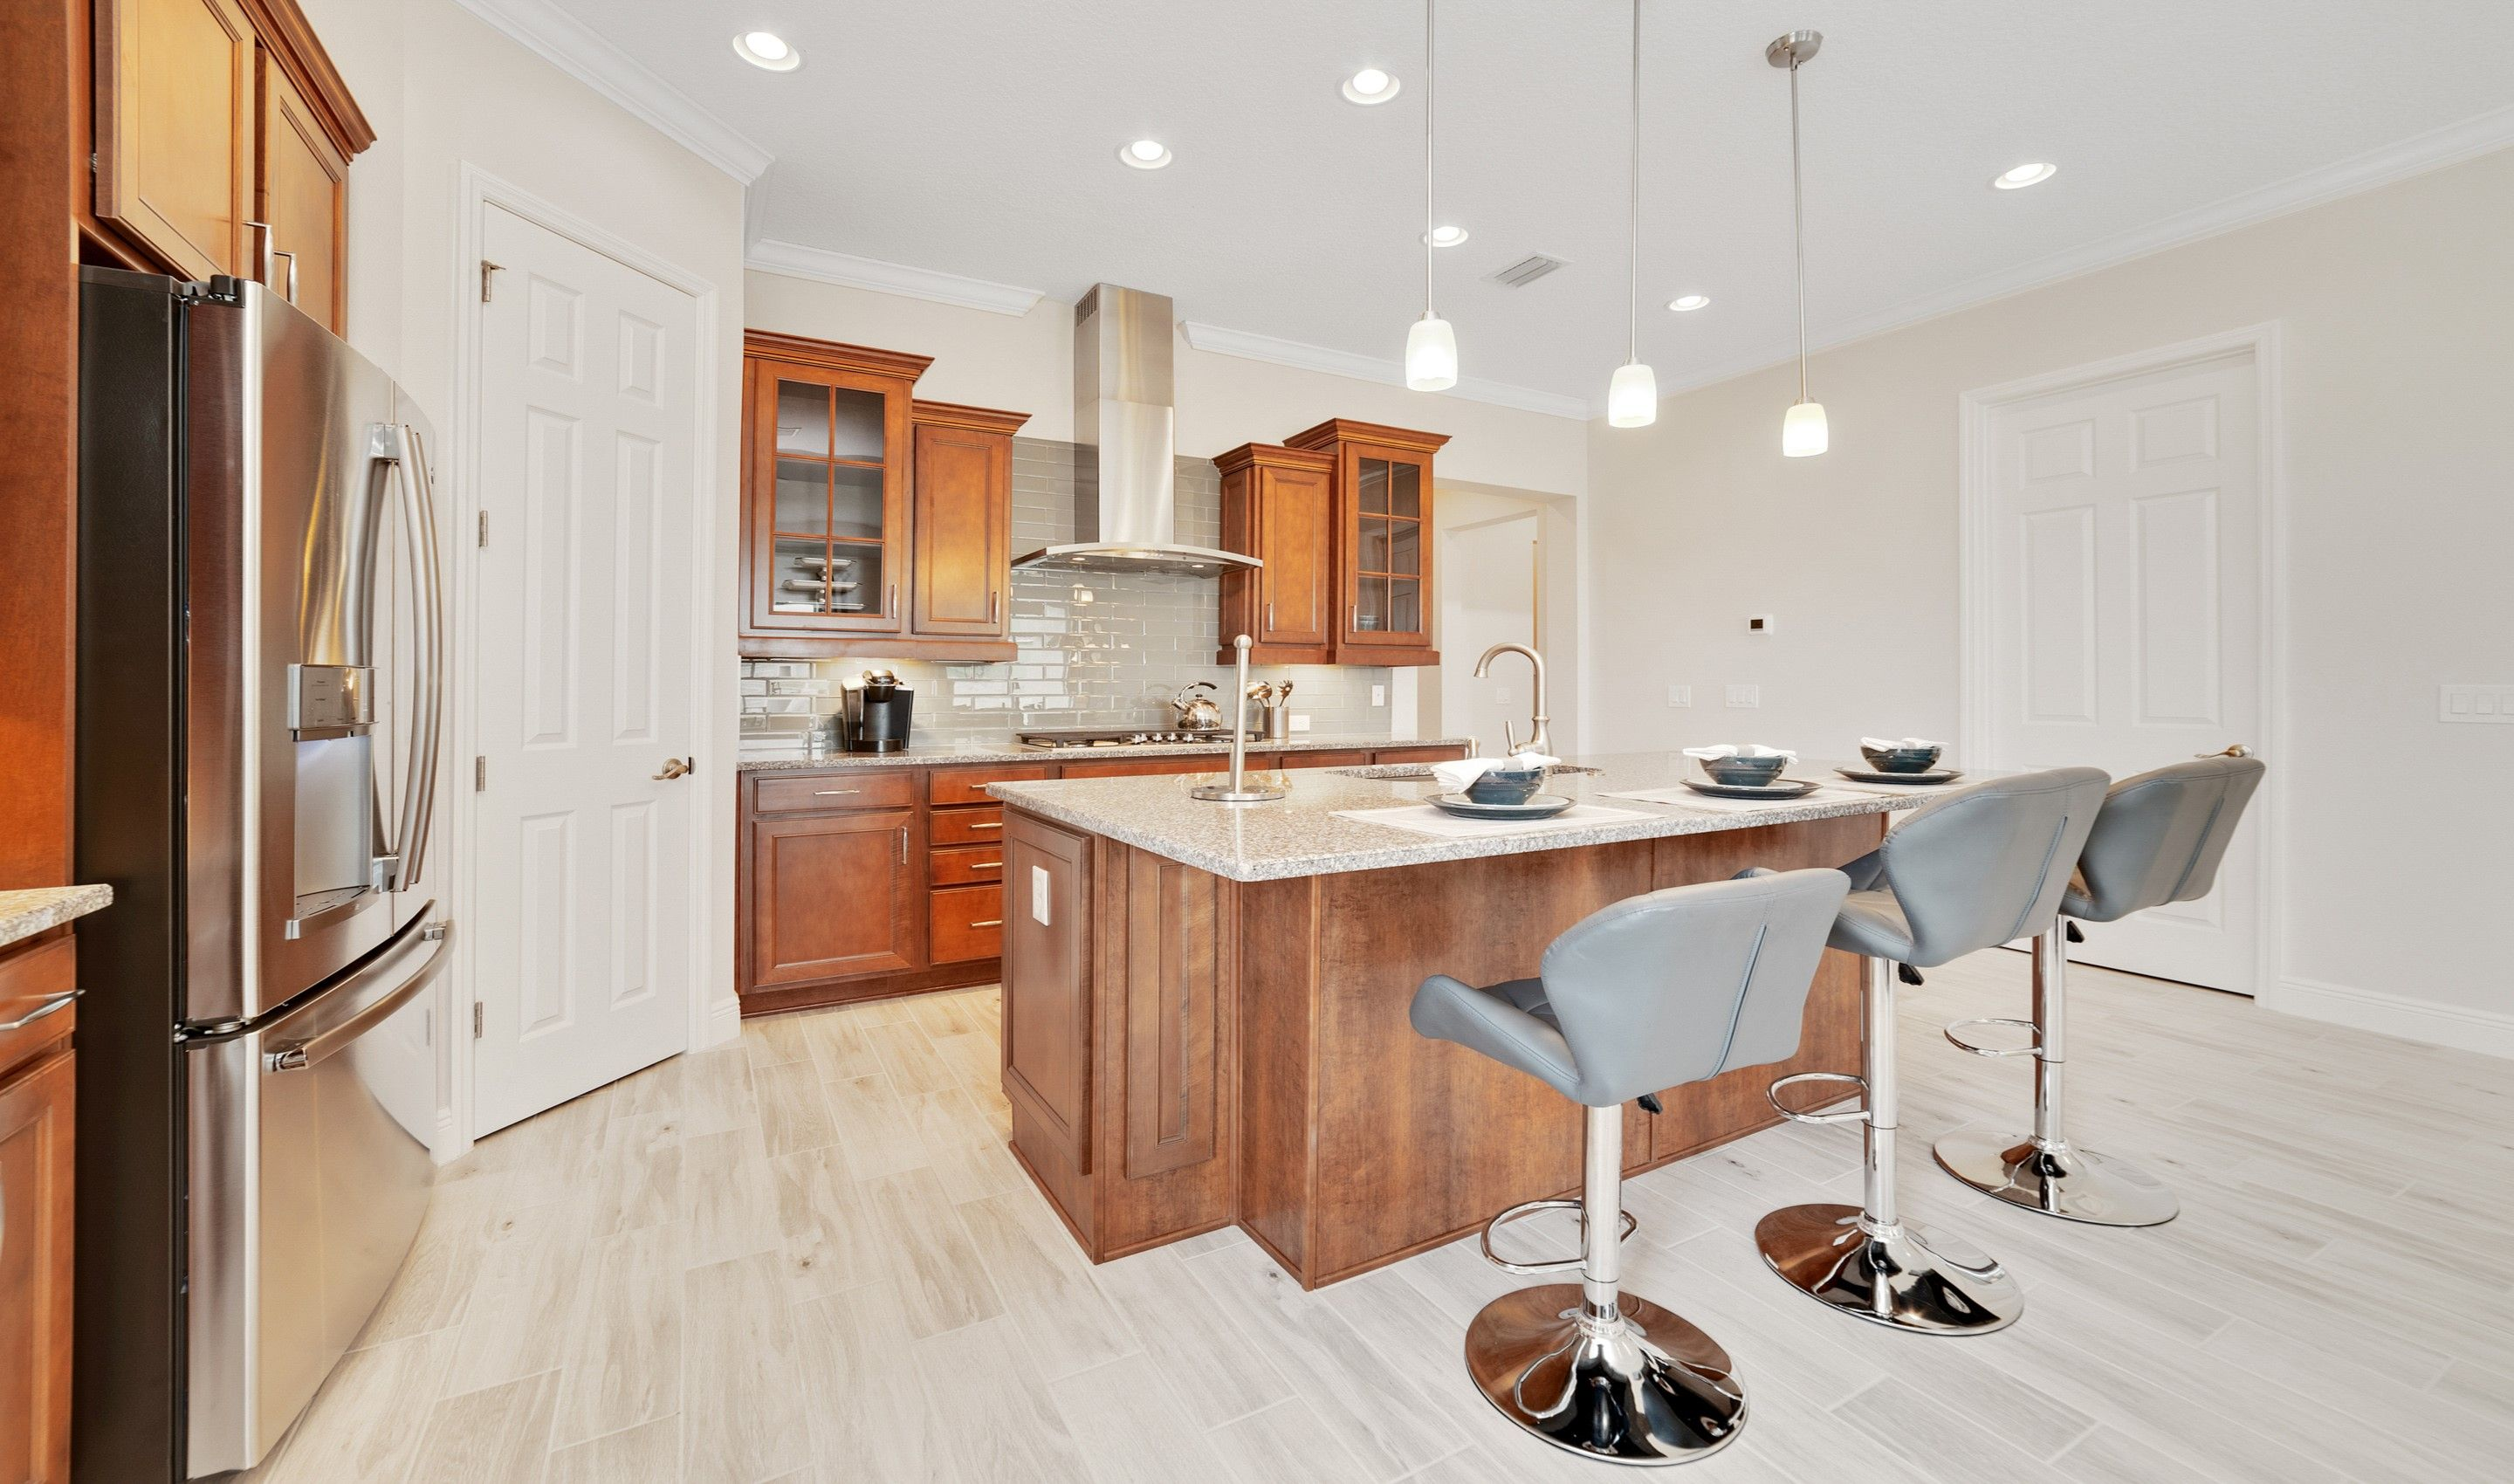 Kitchen featured in the Sherrington By K. Hovnanian® Homes in Orlando, FL